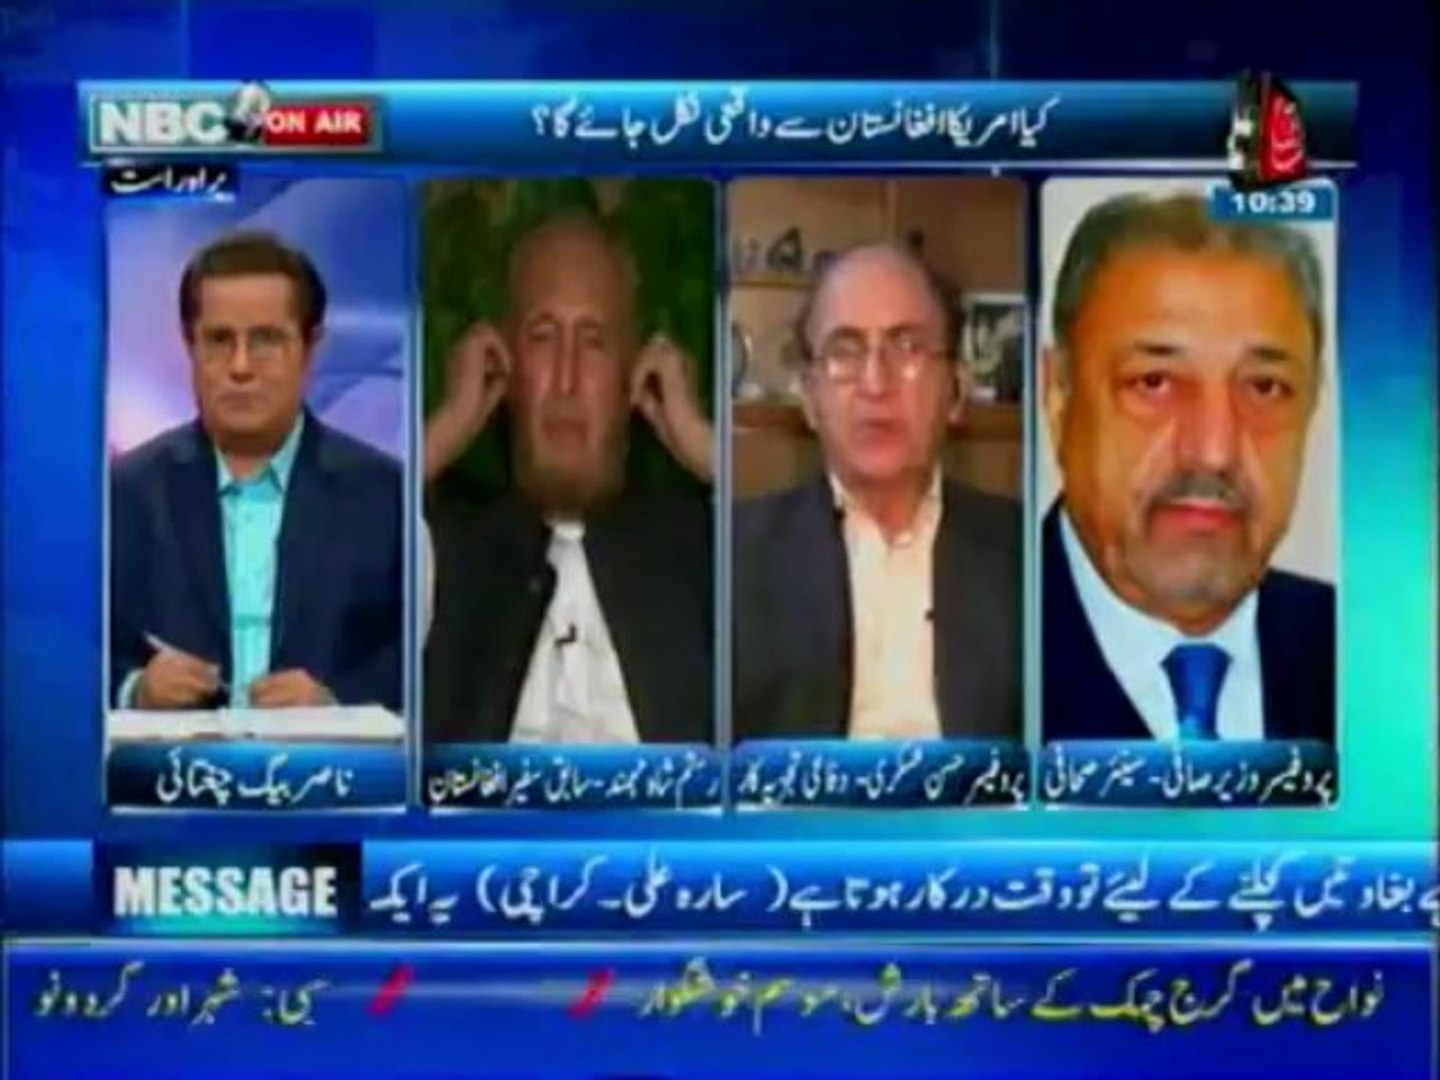 NBC OnAir EP 55 Part 2-11 July 2013-Topic-BBC Documentary on Altaf Hussain, MQM Version, PM Visit to